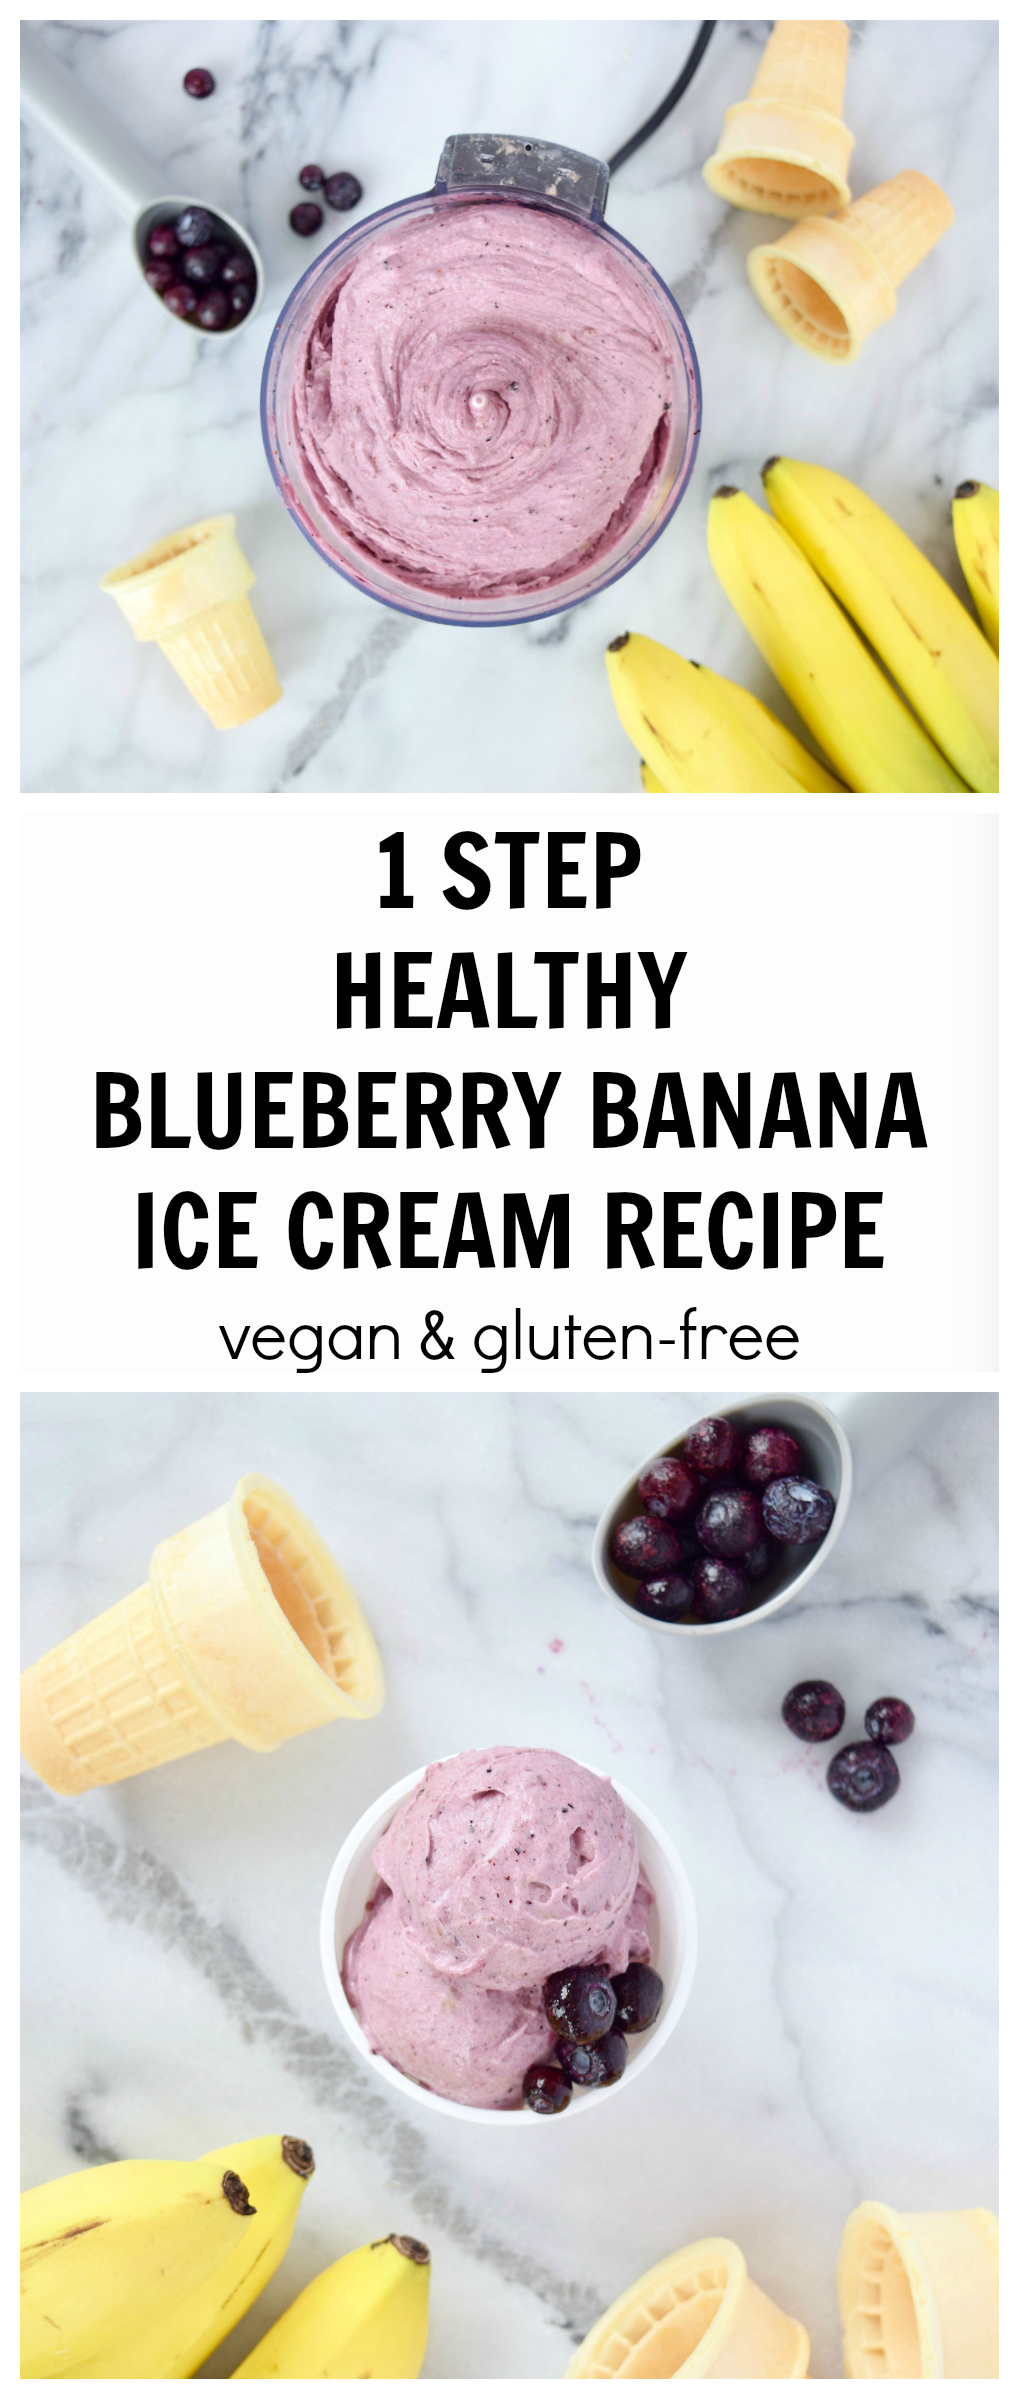 1 STEP HEALTHY BLUEBERRY BANANA ICE CREAM RECIPE